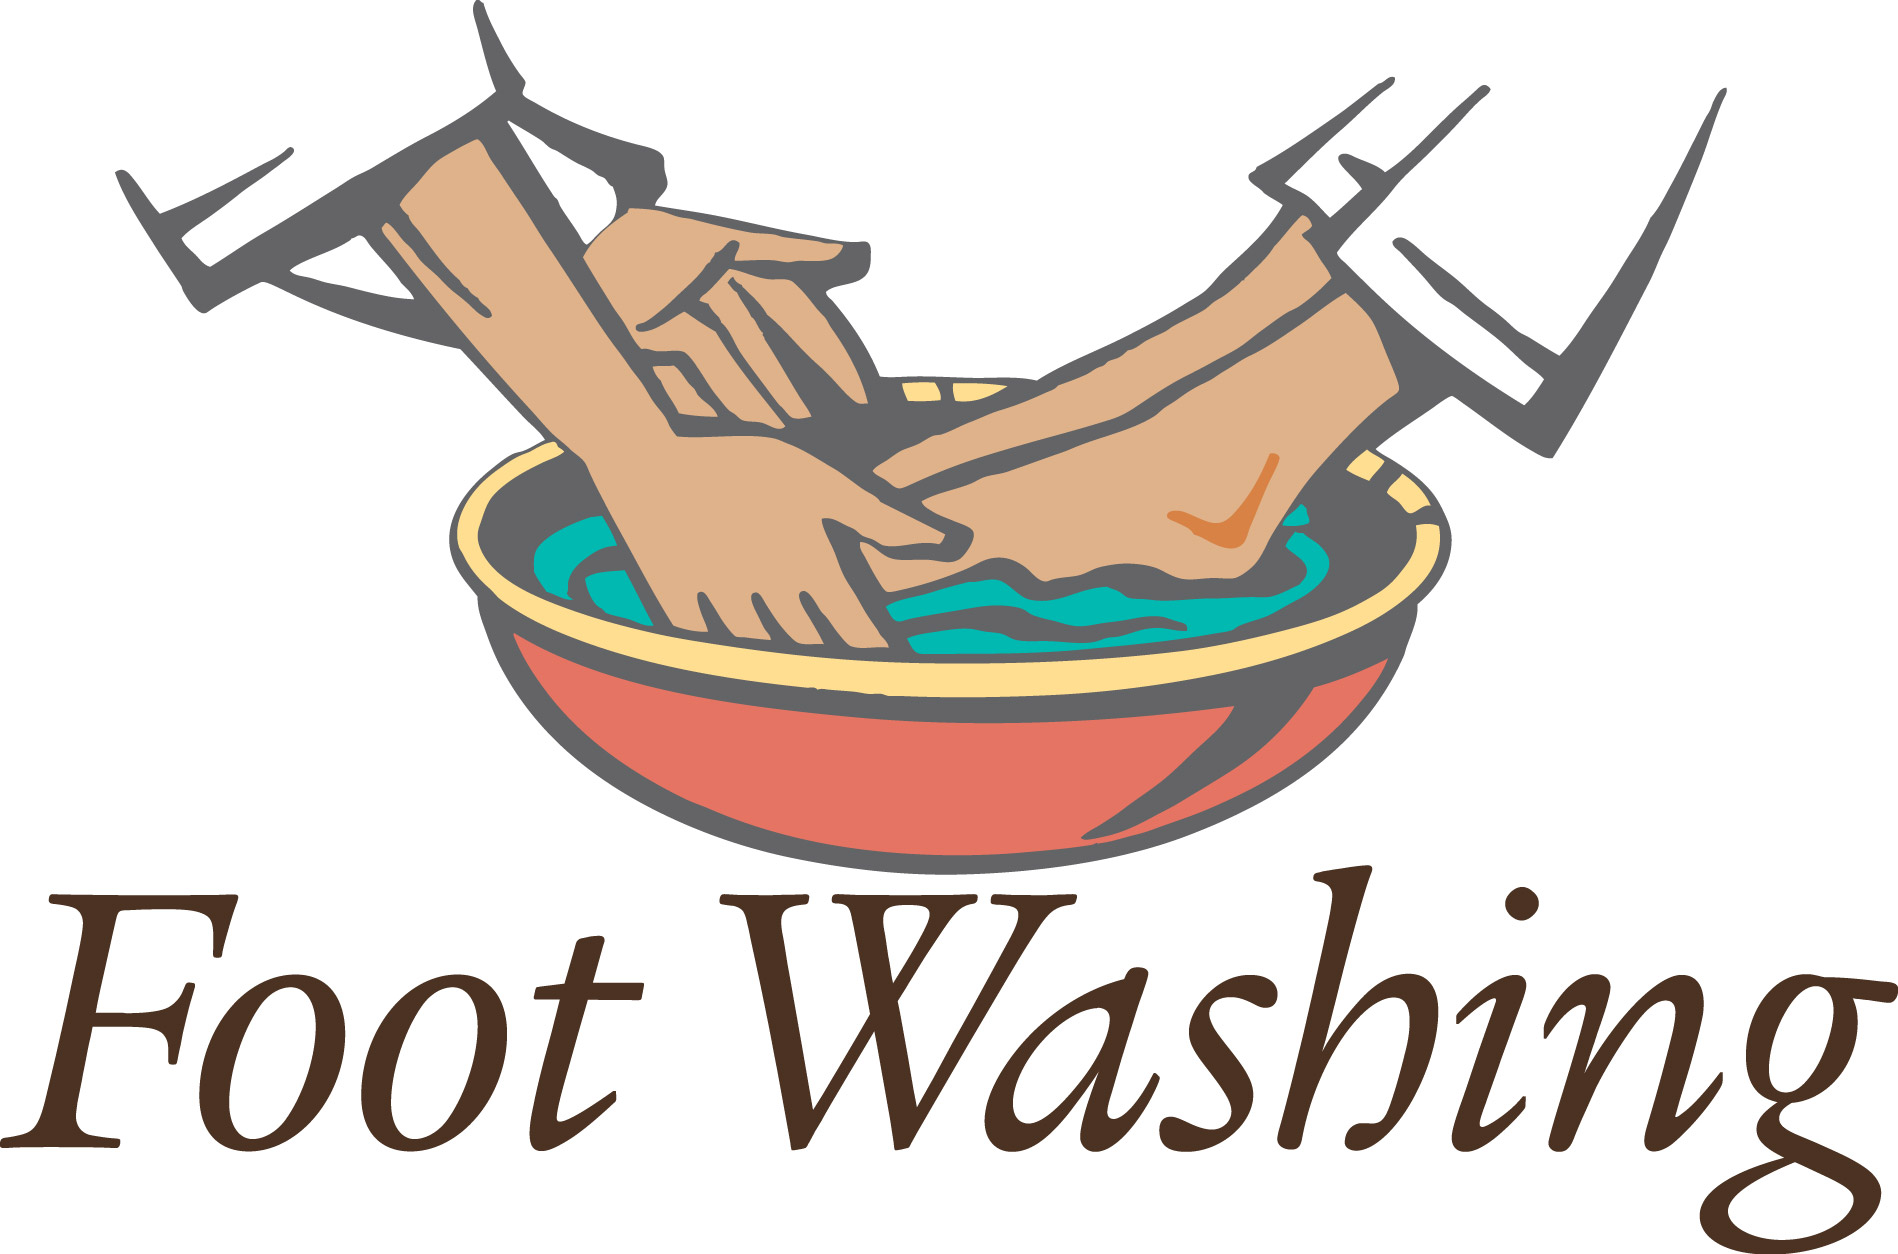 Washing Feet Clip Art.